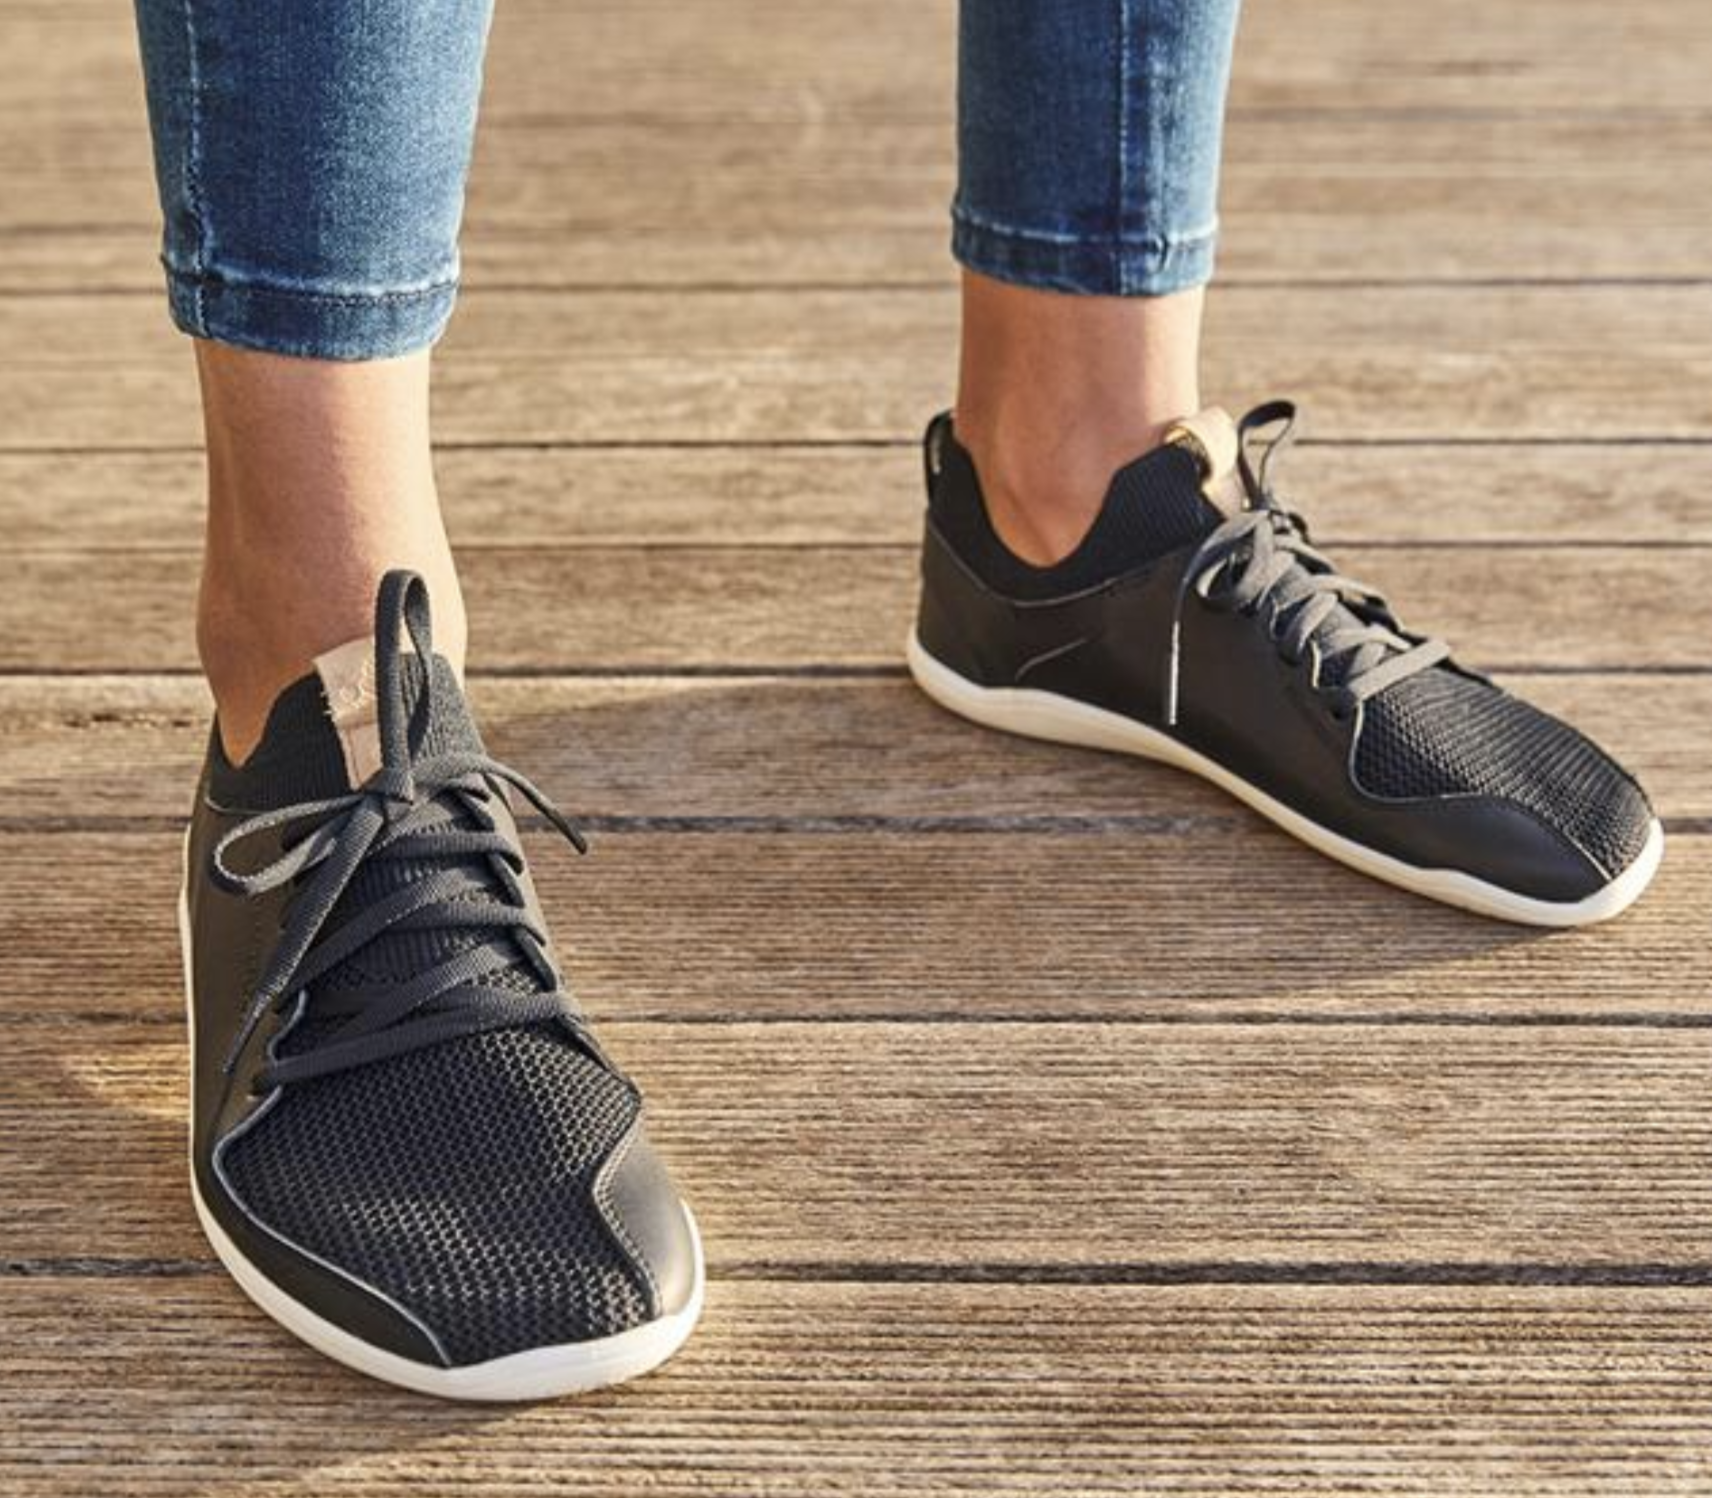 eco sustainable sneakers training shoes | conscious fashion collective